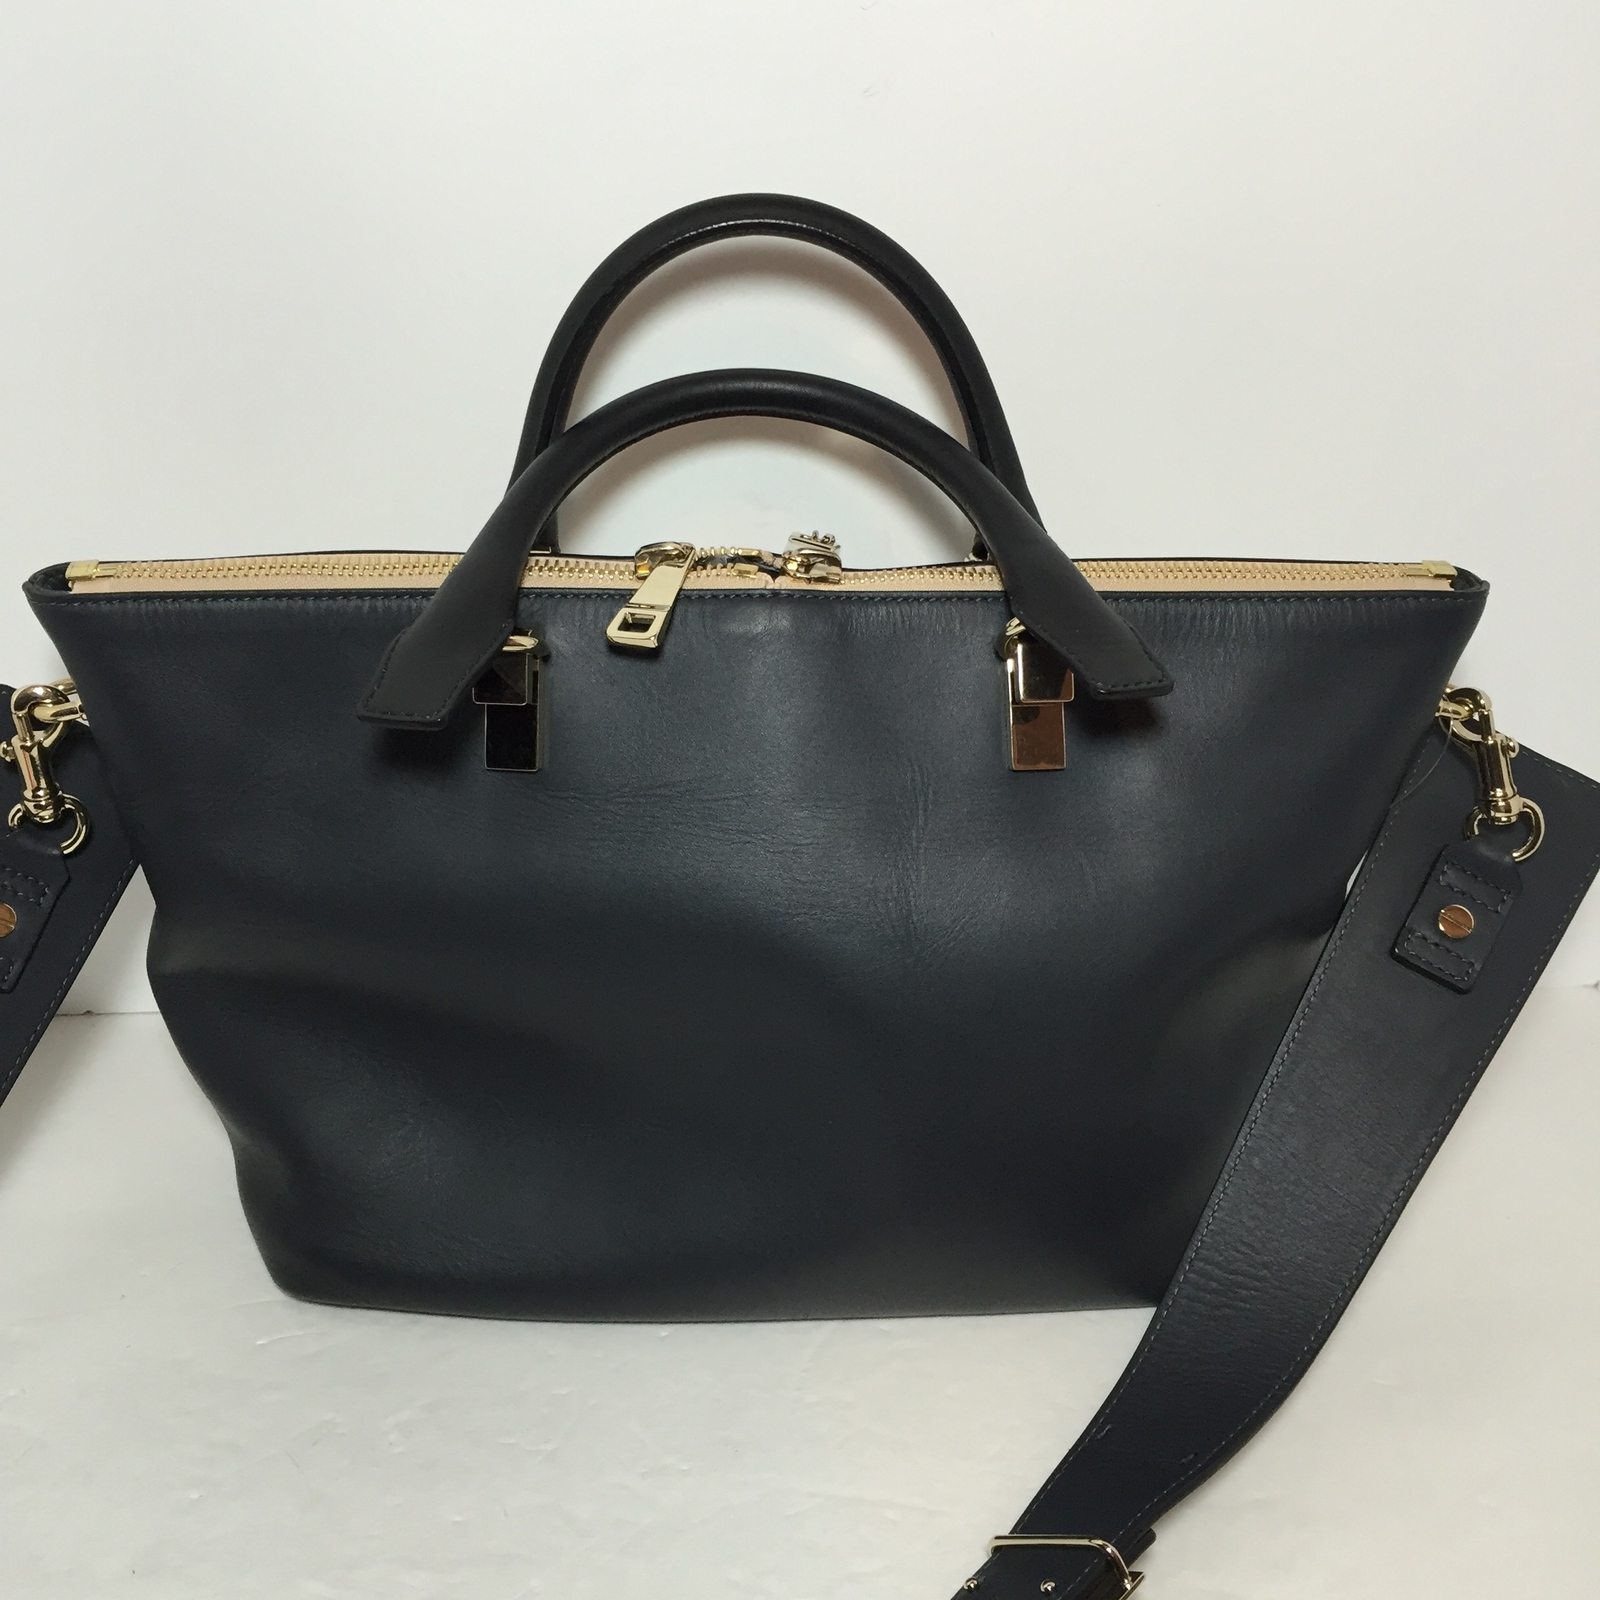 CHLOE MEDIUM BAYLEE BAG MARSHMALLOW GREY/BLACK